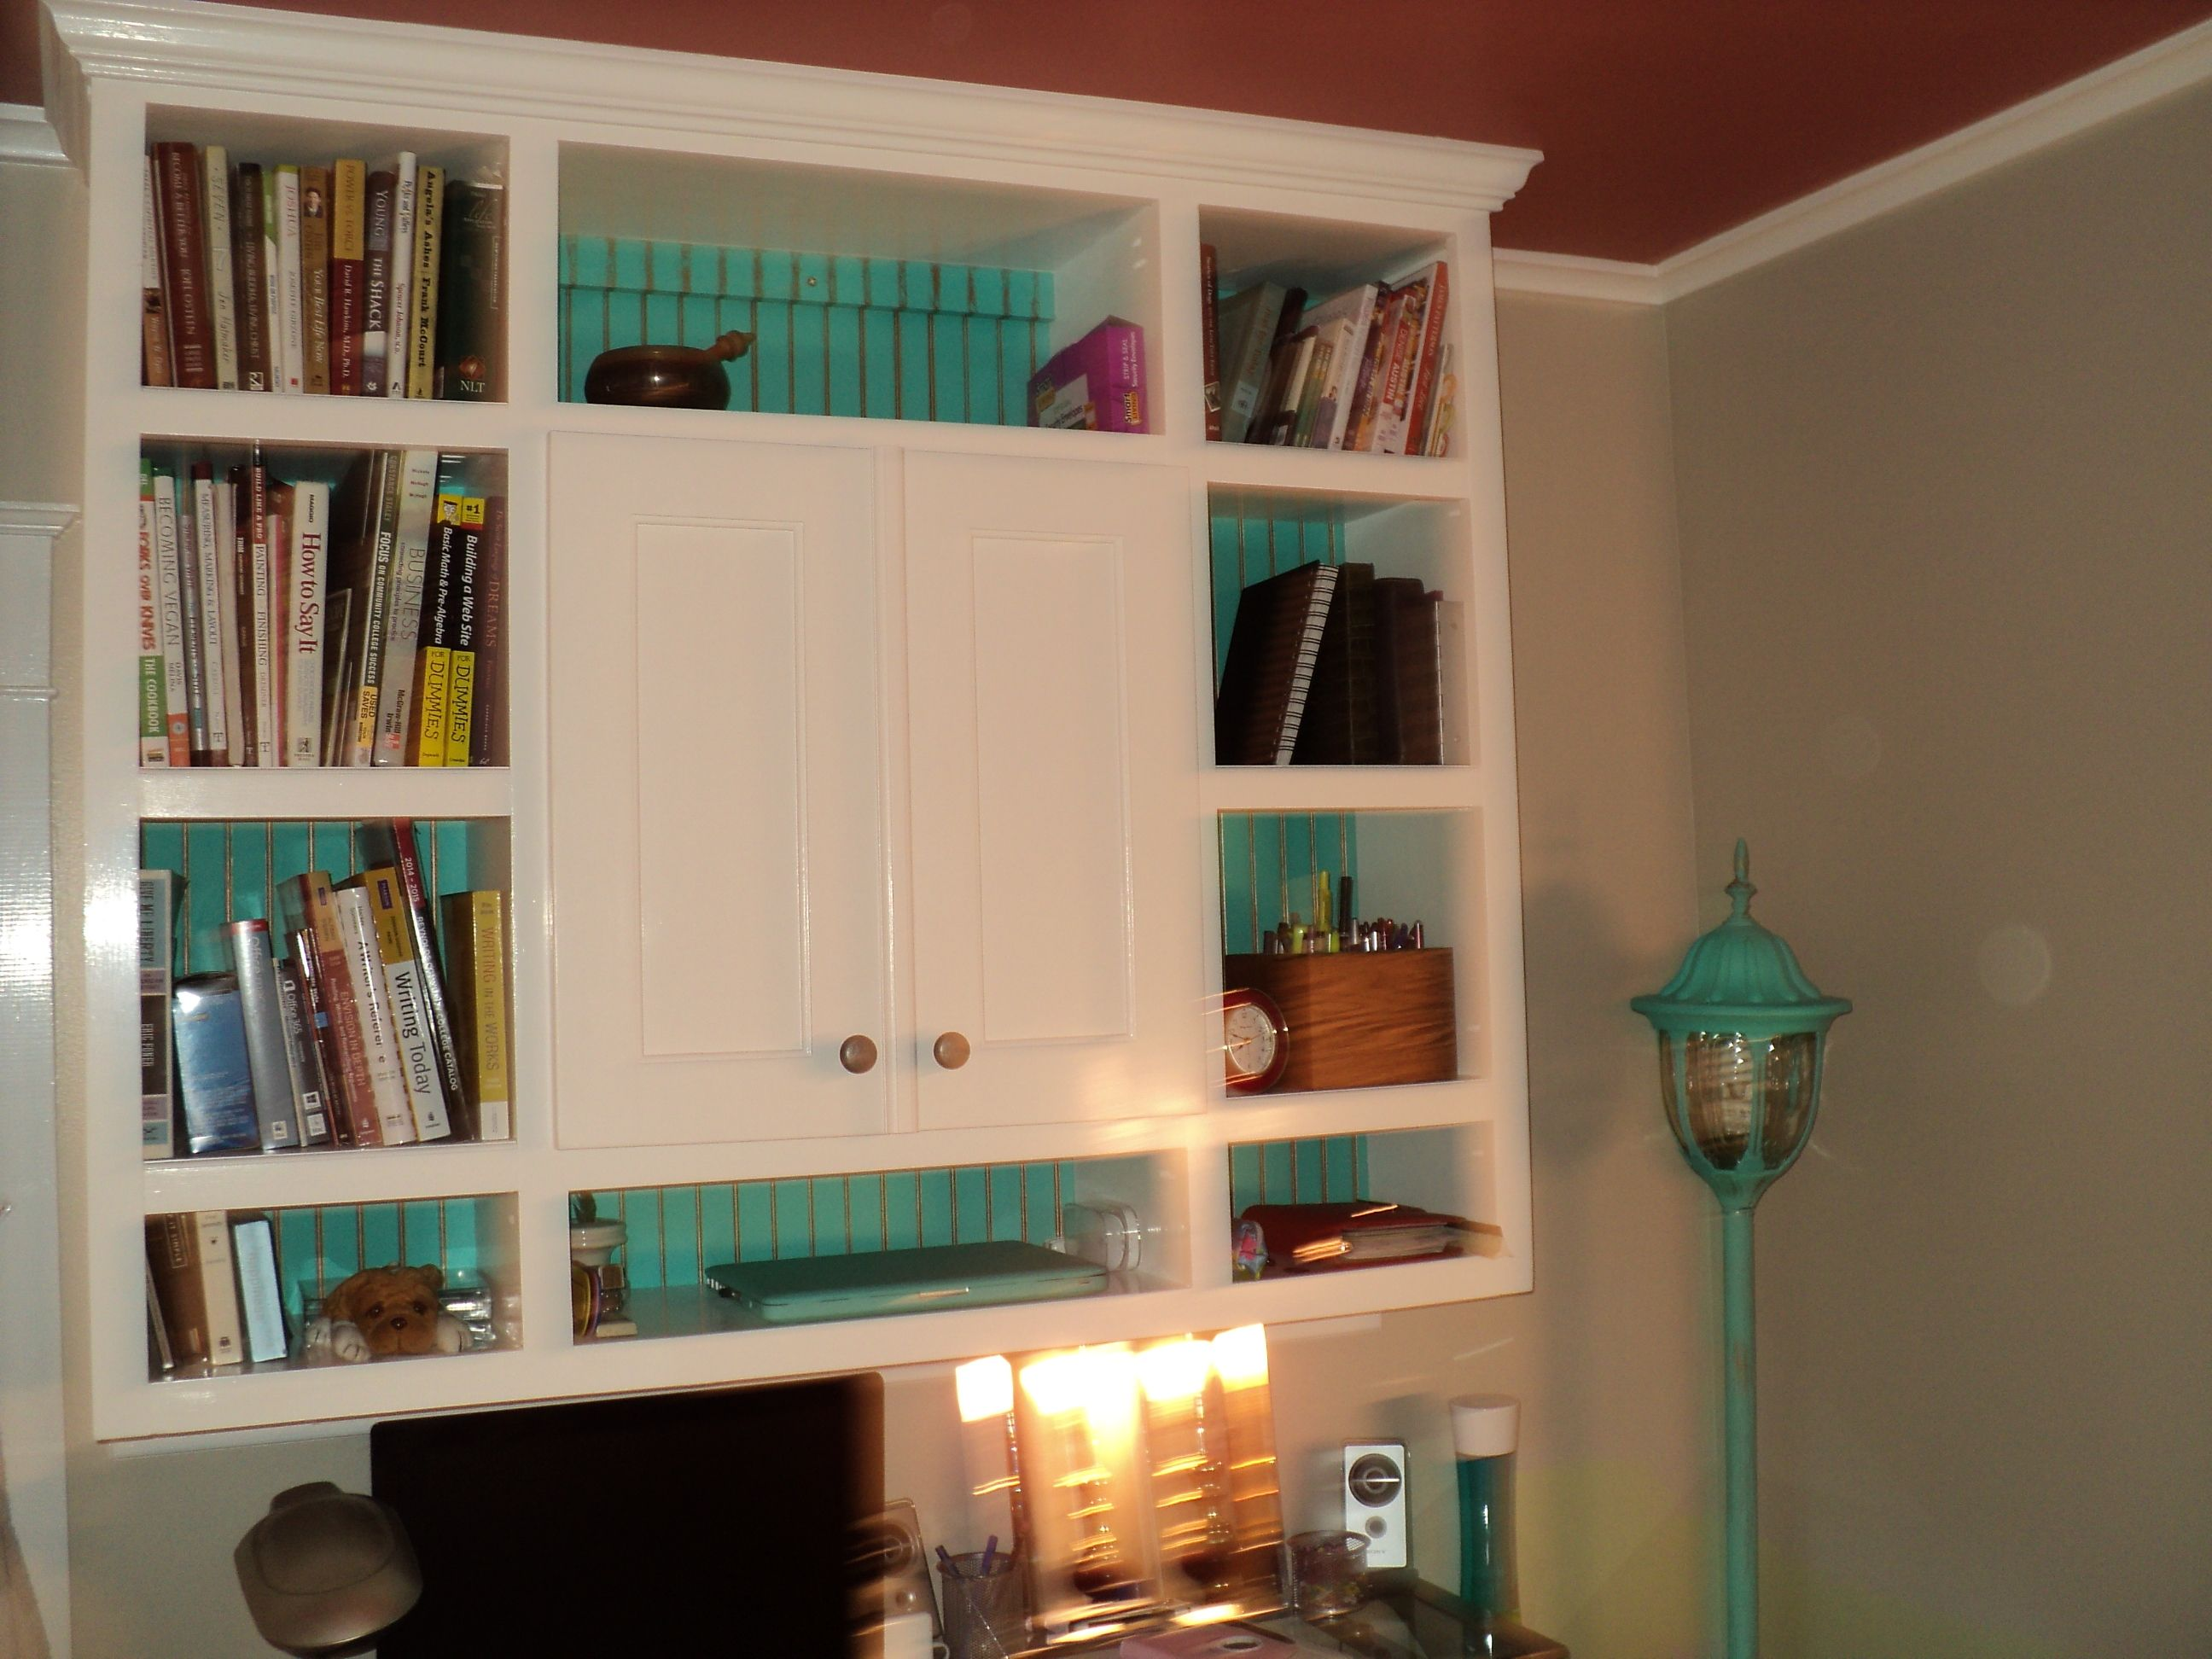 I Designed And Built My First Cabinet Bookshelf Left Room To Build A Corner Will Replace Glass Desk With Cherry Top Bead Board